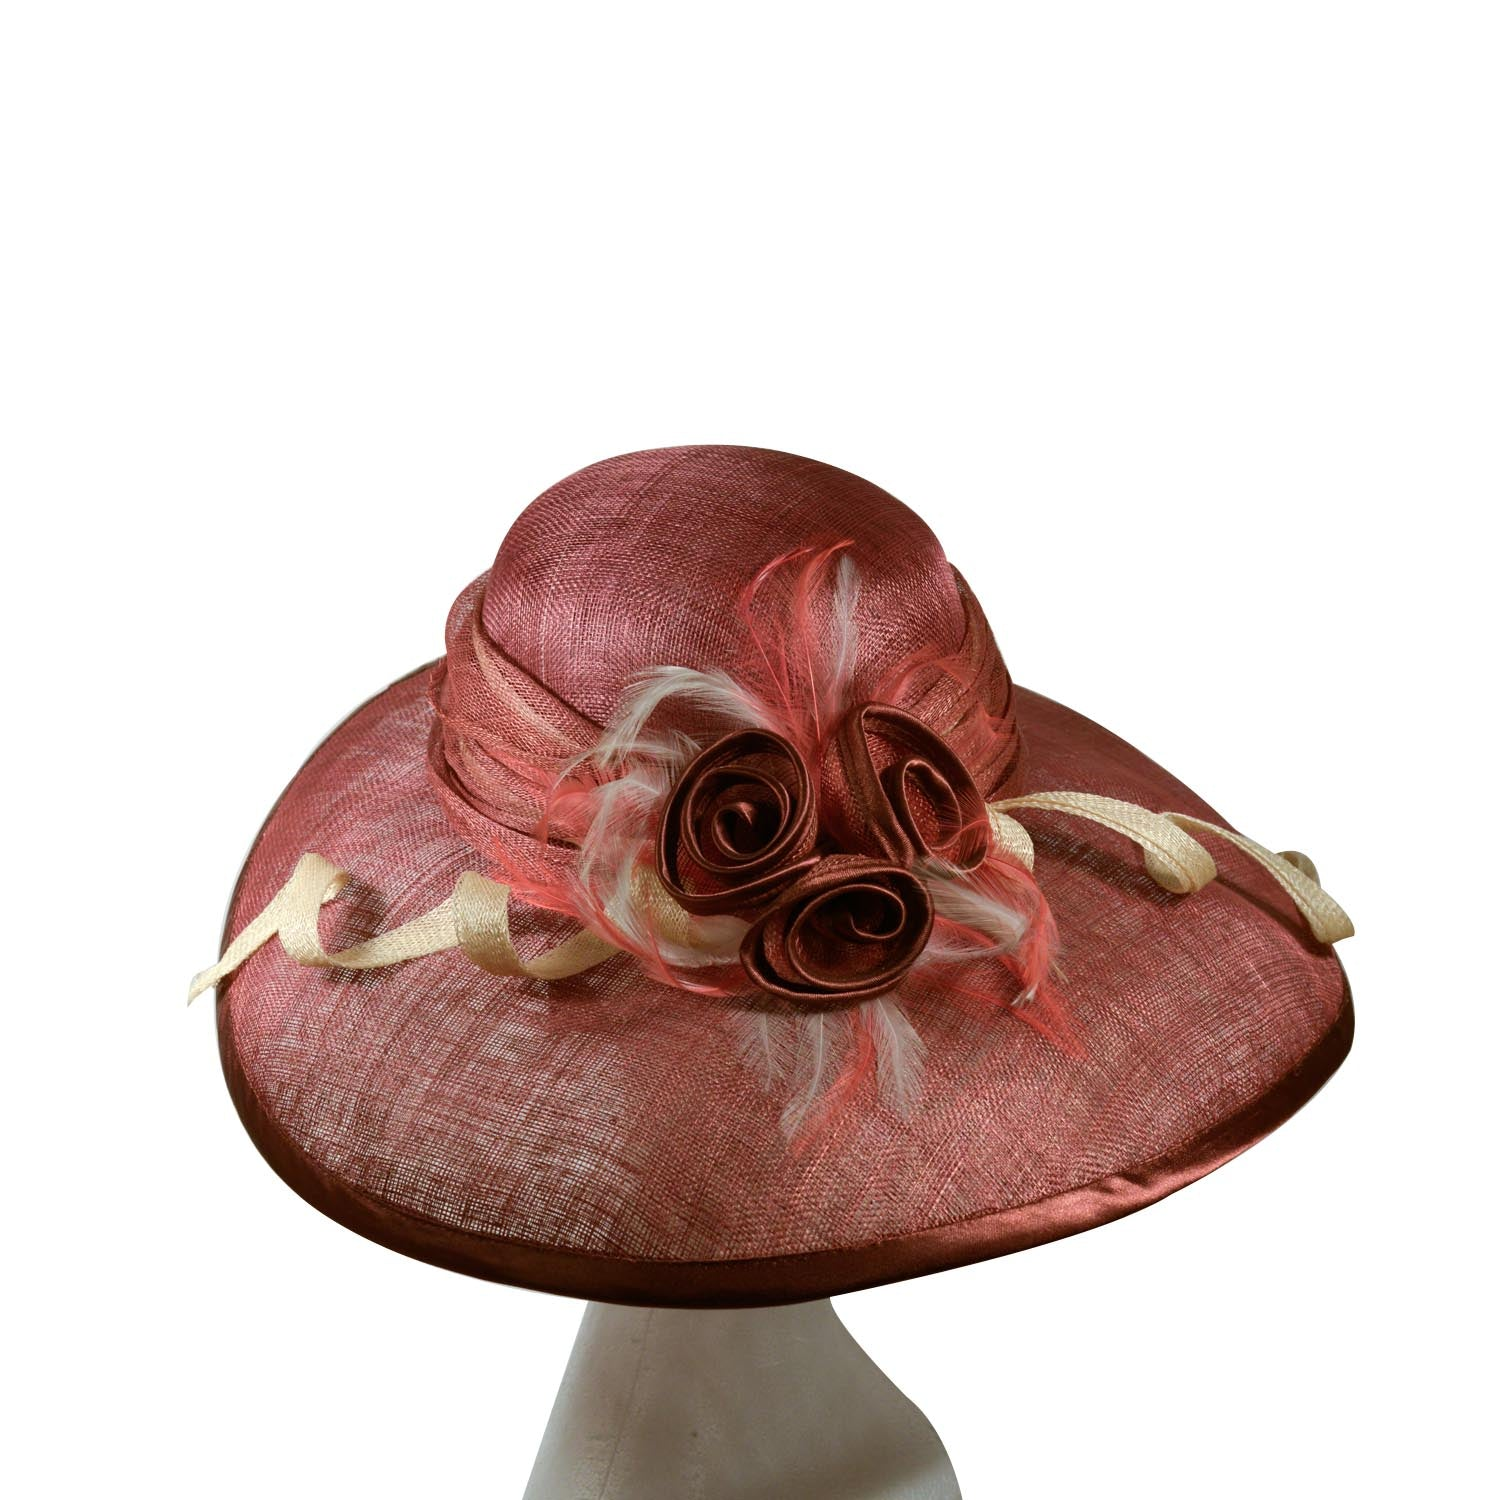 Brown straw hat with oval brim with cream and chocolate trim